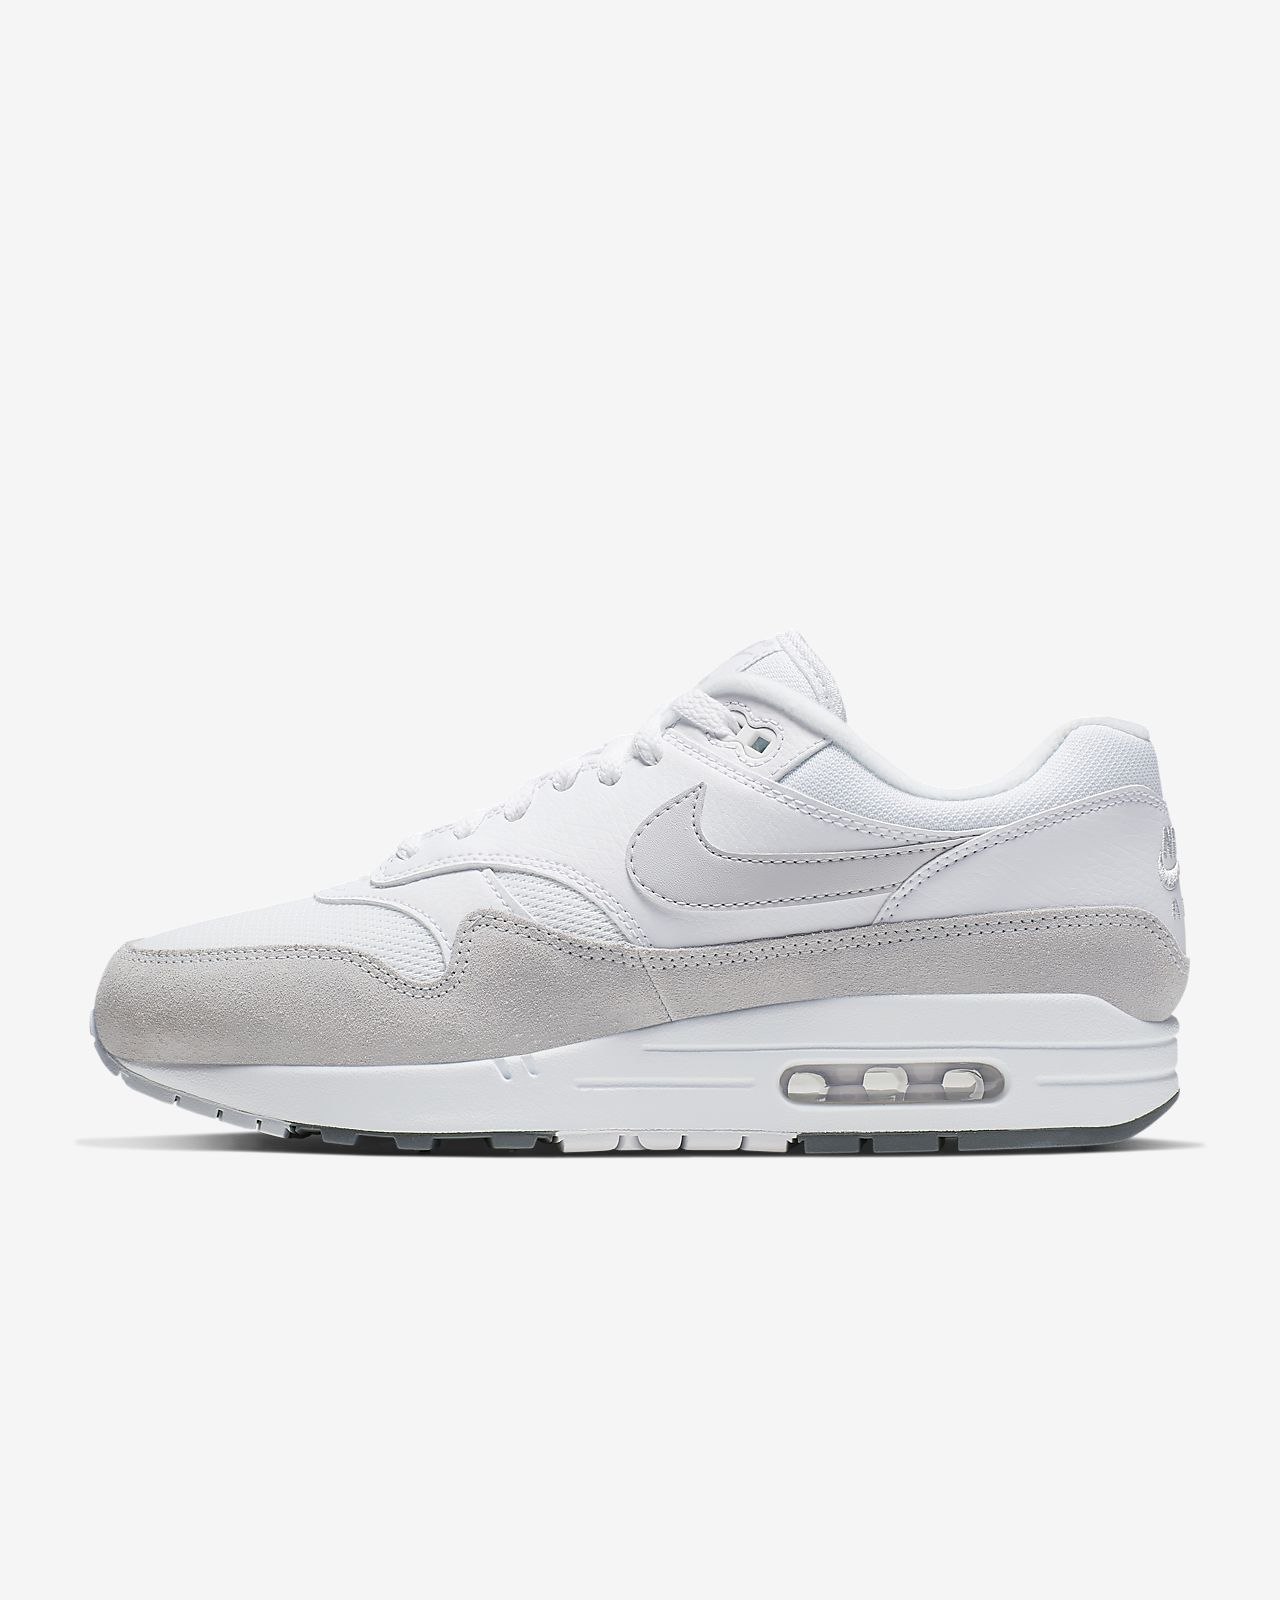 03d9f8faa1f1 Men s Shoe. Nike Air Max 1